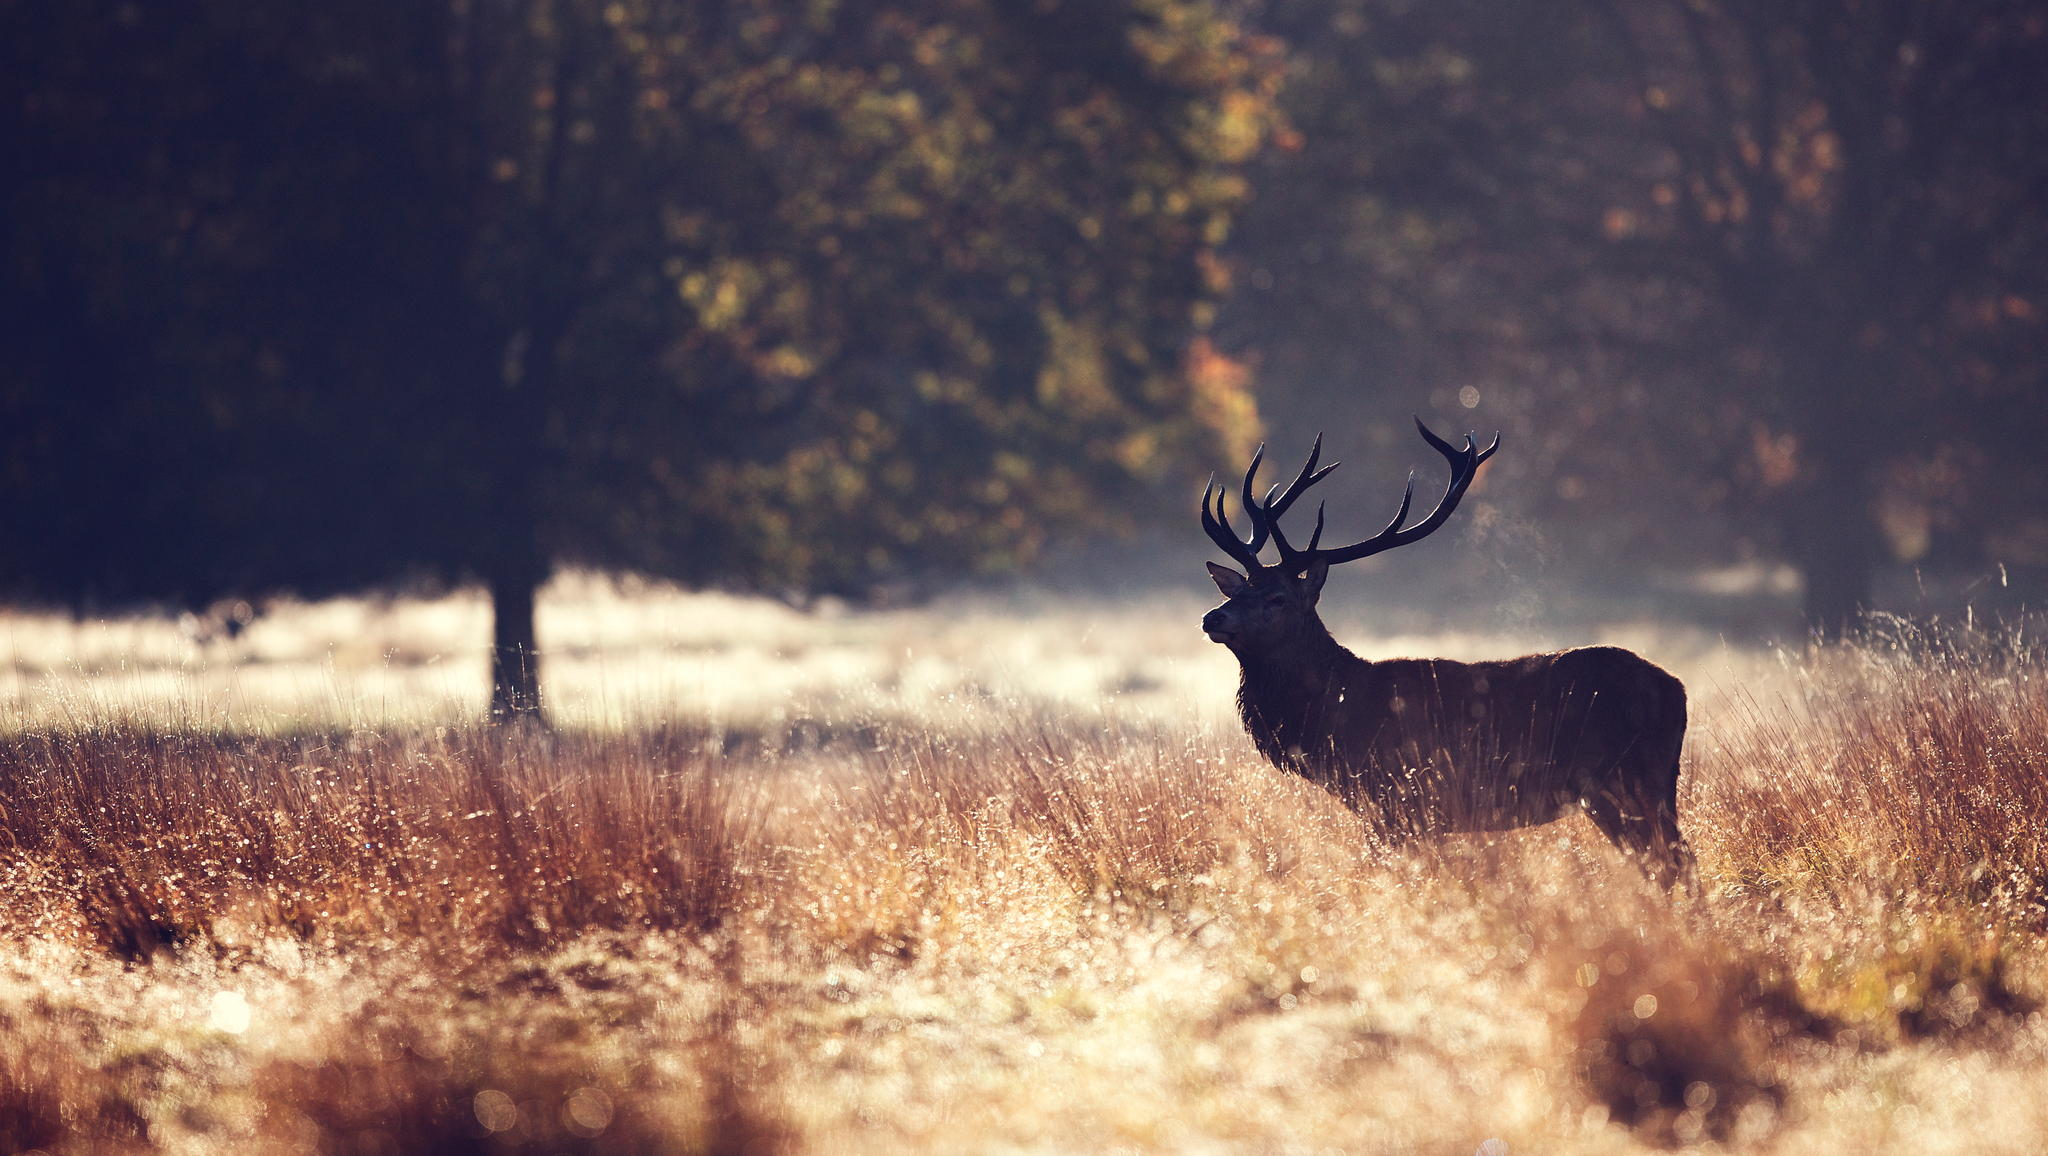 One of the lads © Mark Bridger